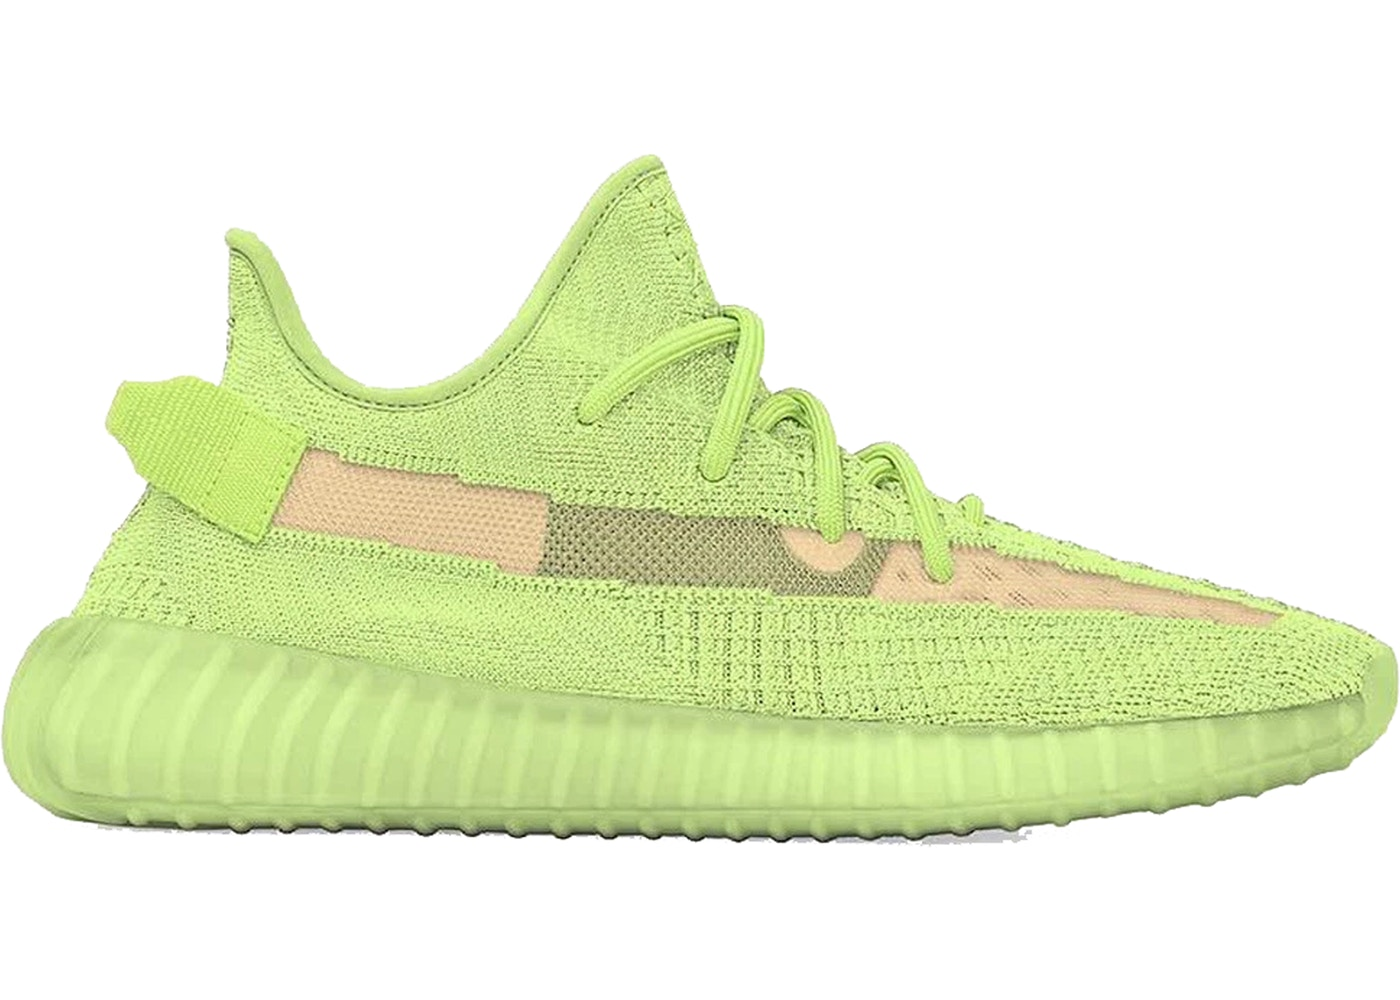 88d086d57f627 adidas Yeezy Boost 350 V2 Glow